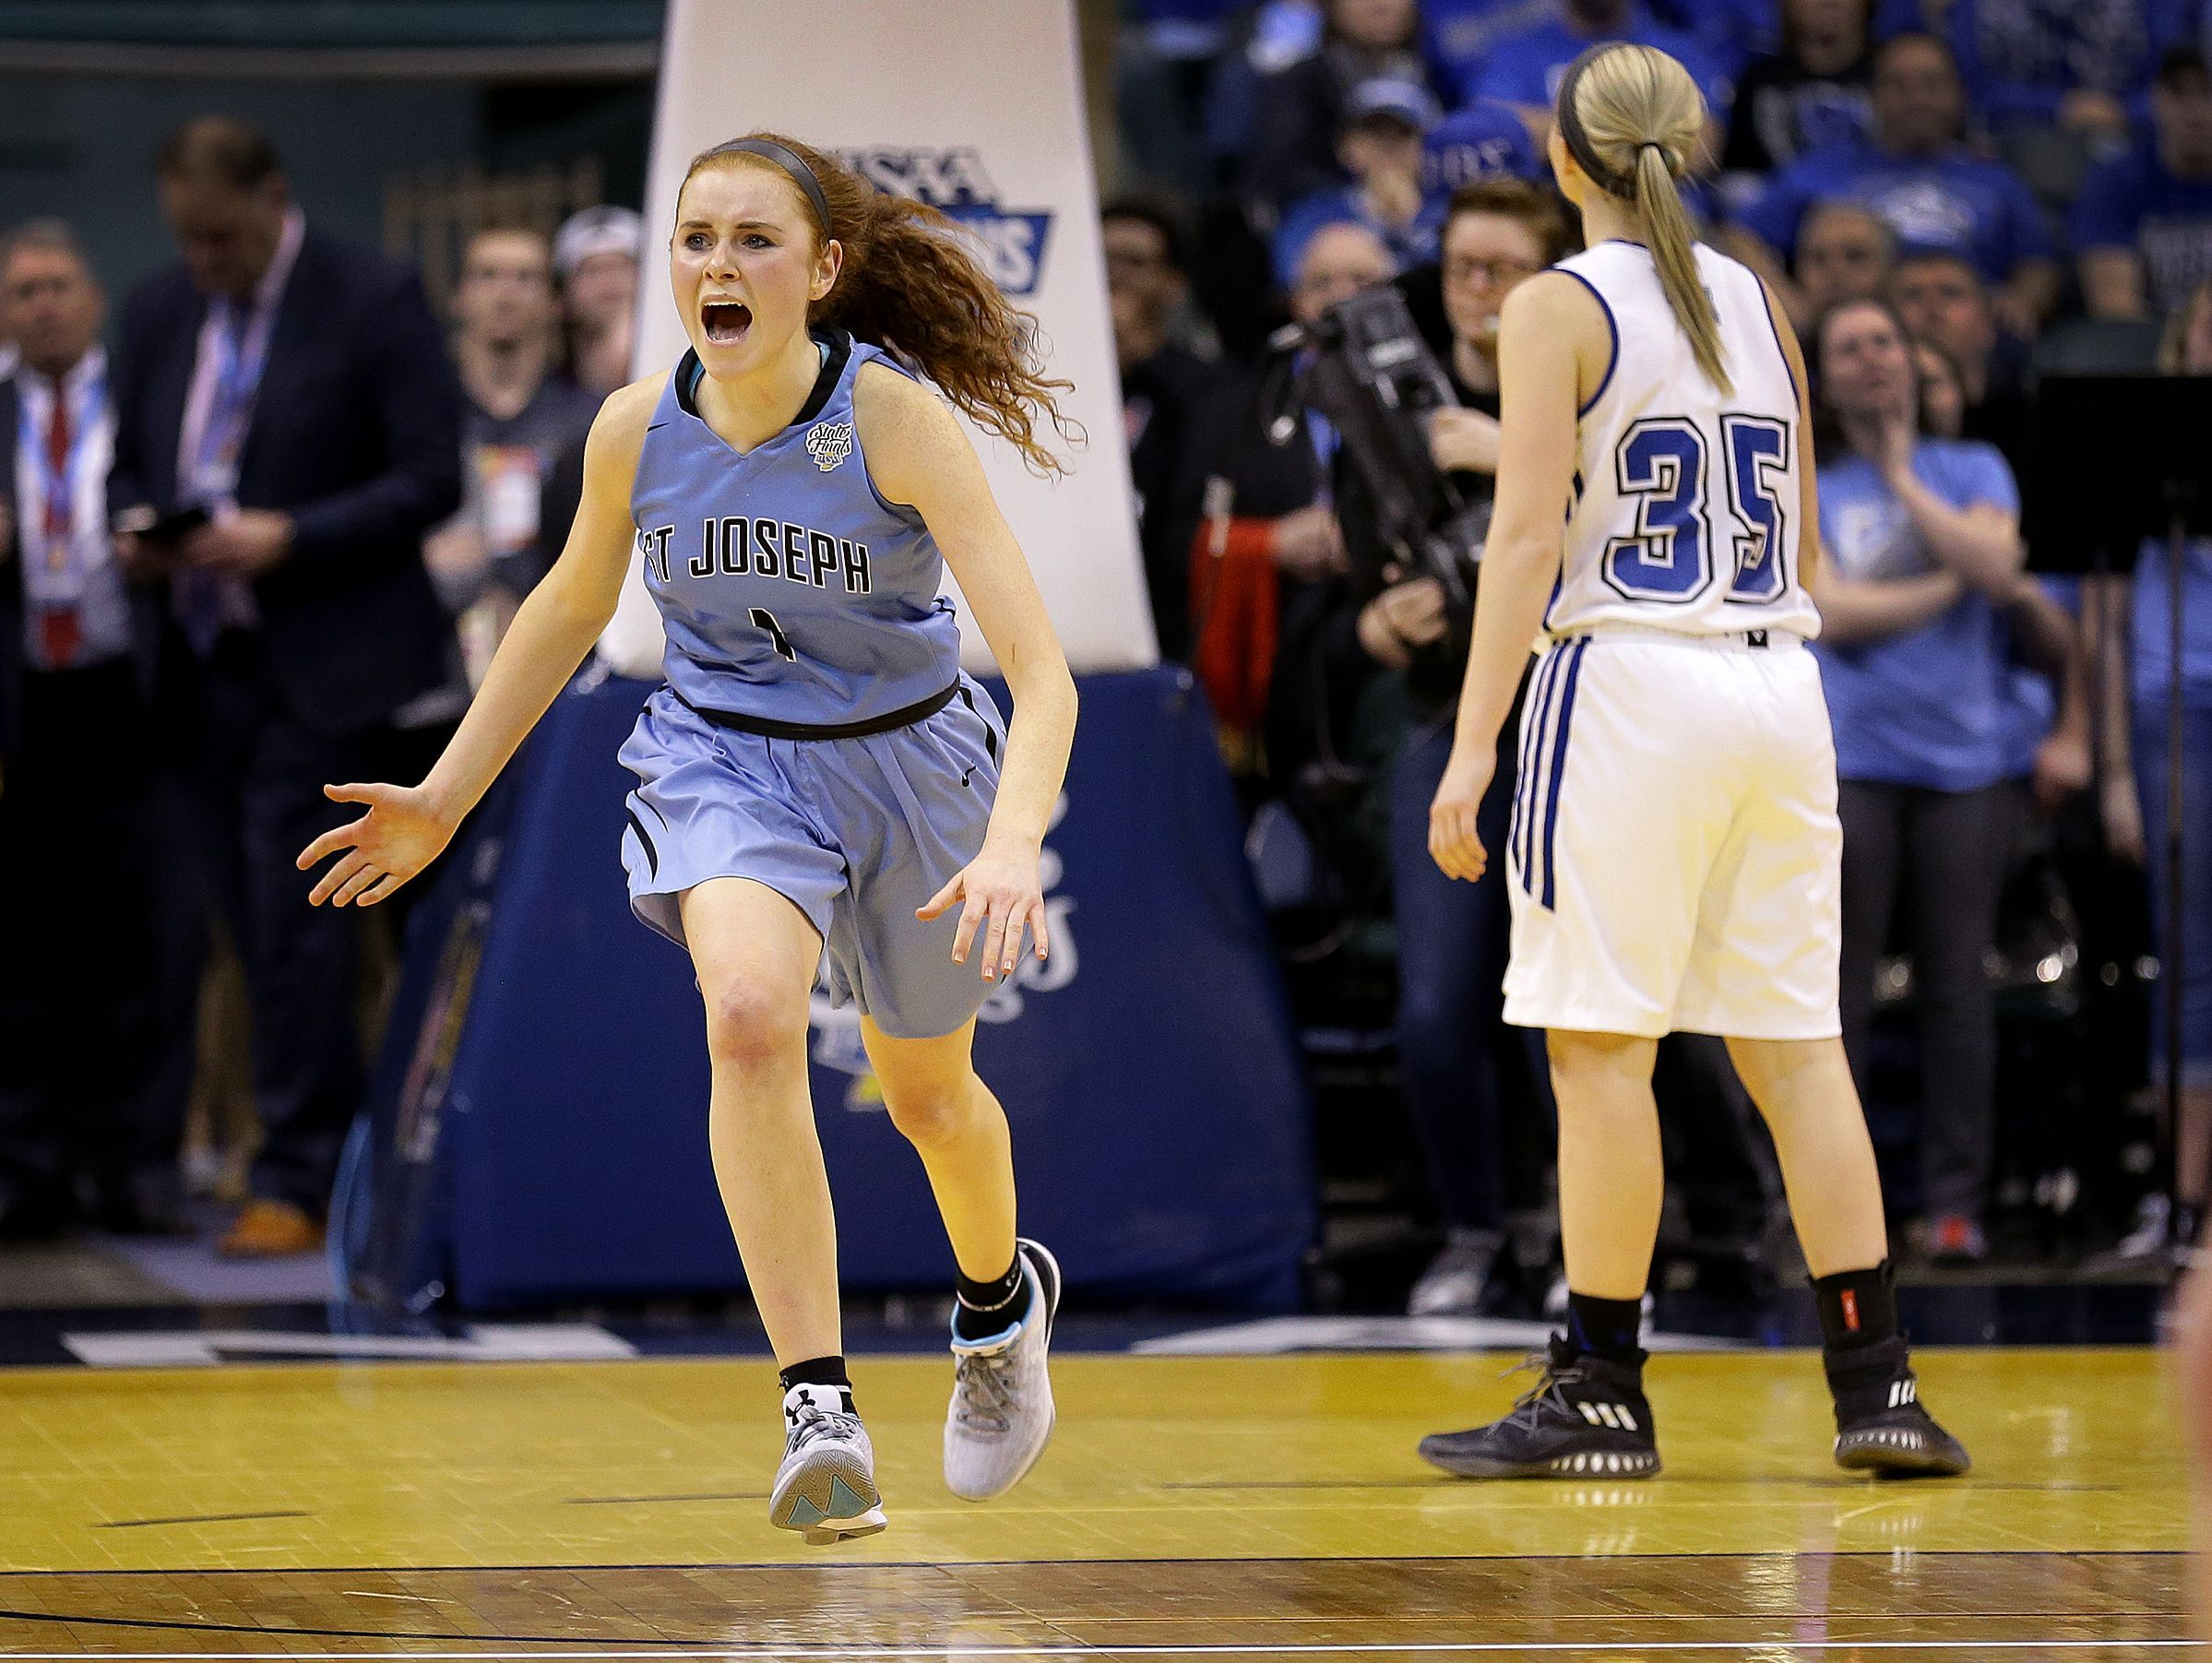 St. Joseph Indians Daly Sullivan (1) celebrates their win in the IHSAA 3A Girls Basketball State Finals game Saturday, February 25, 2017, evening at Bankers Life Fieldhouse. The St. Joseph Indians defeated the North Harrison Lady Cats 57-49.